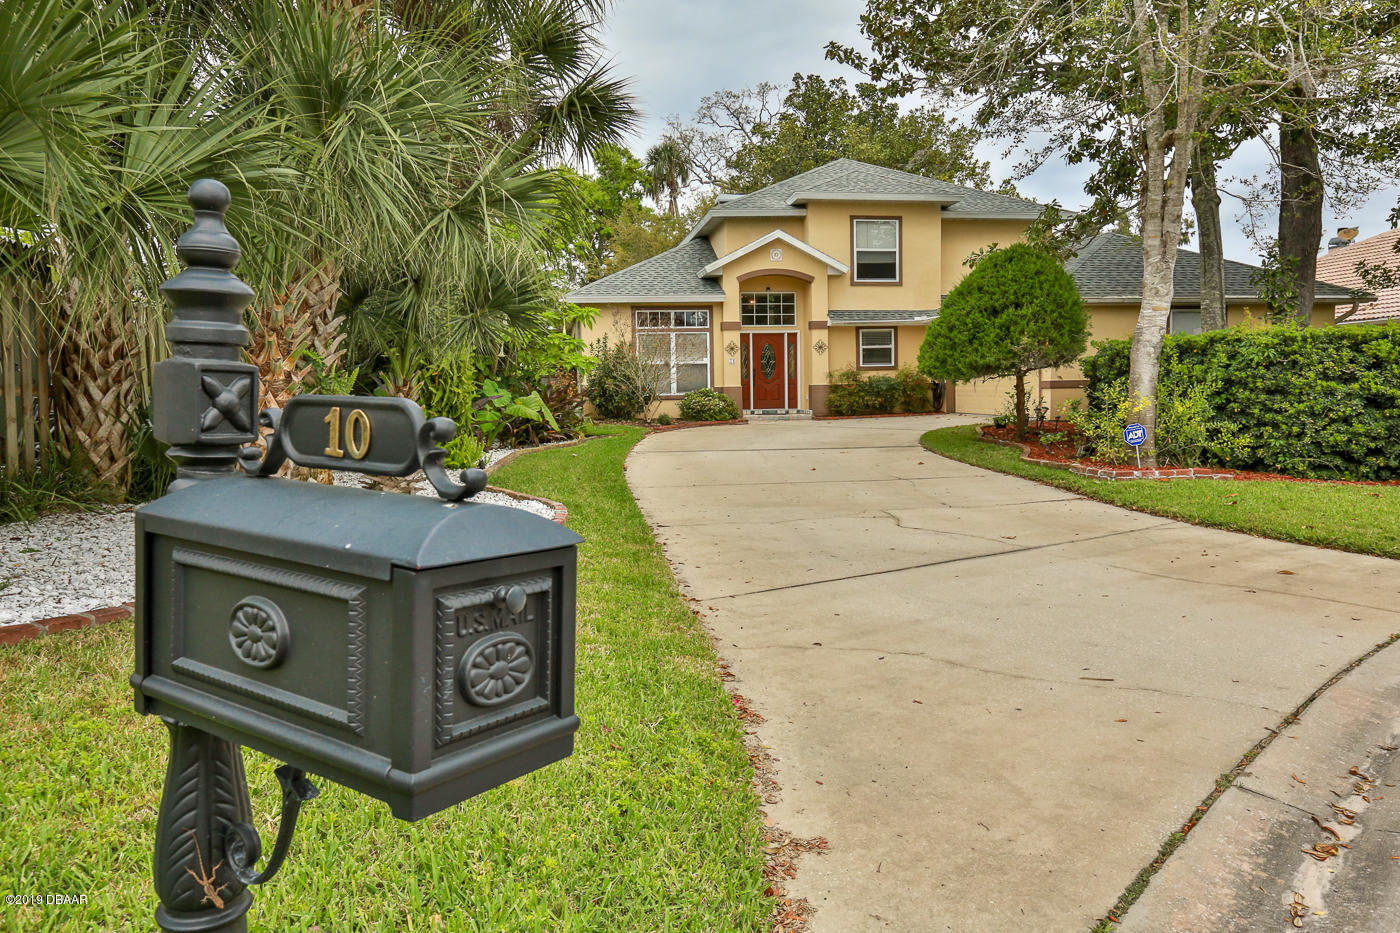 10 N Ravensfield Lane 32174 - One of Ormond Beach Homes for Sale